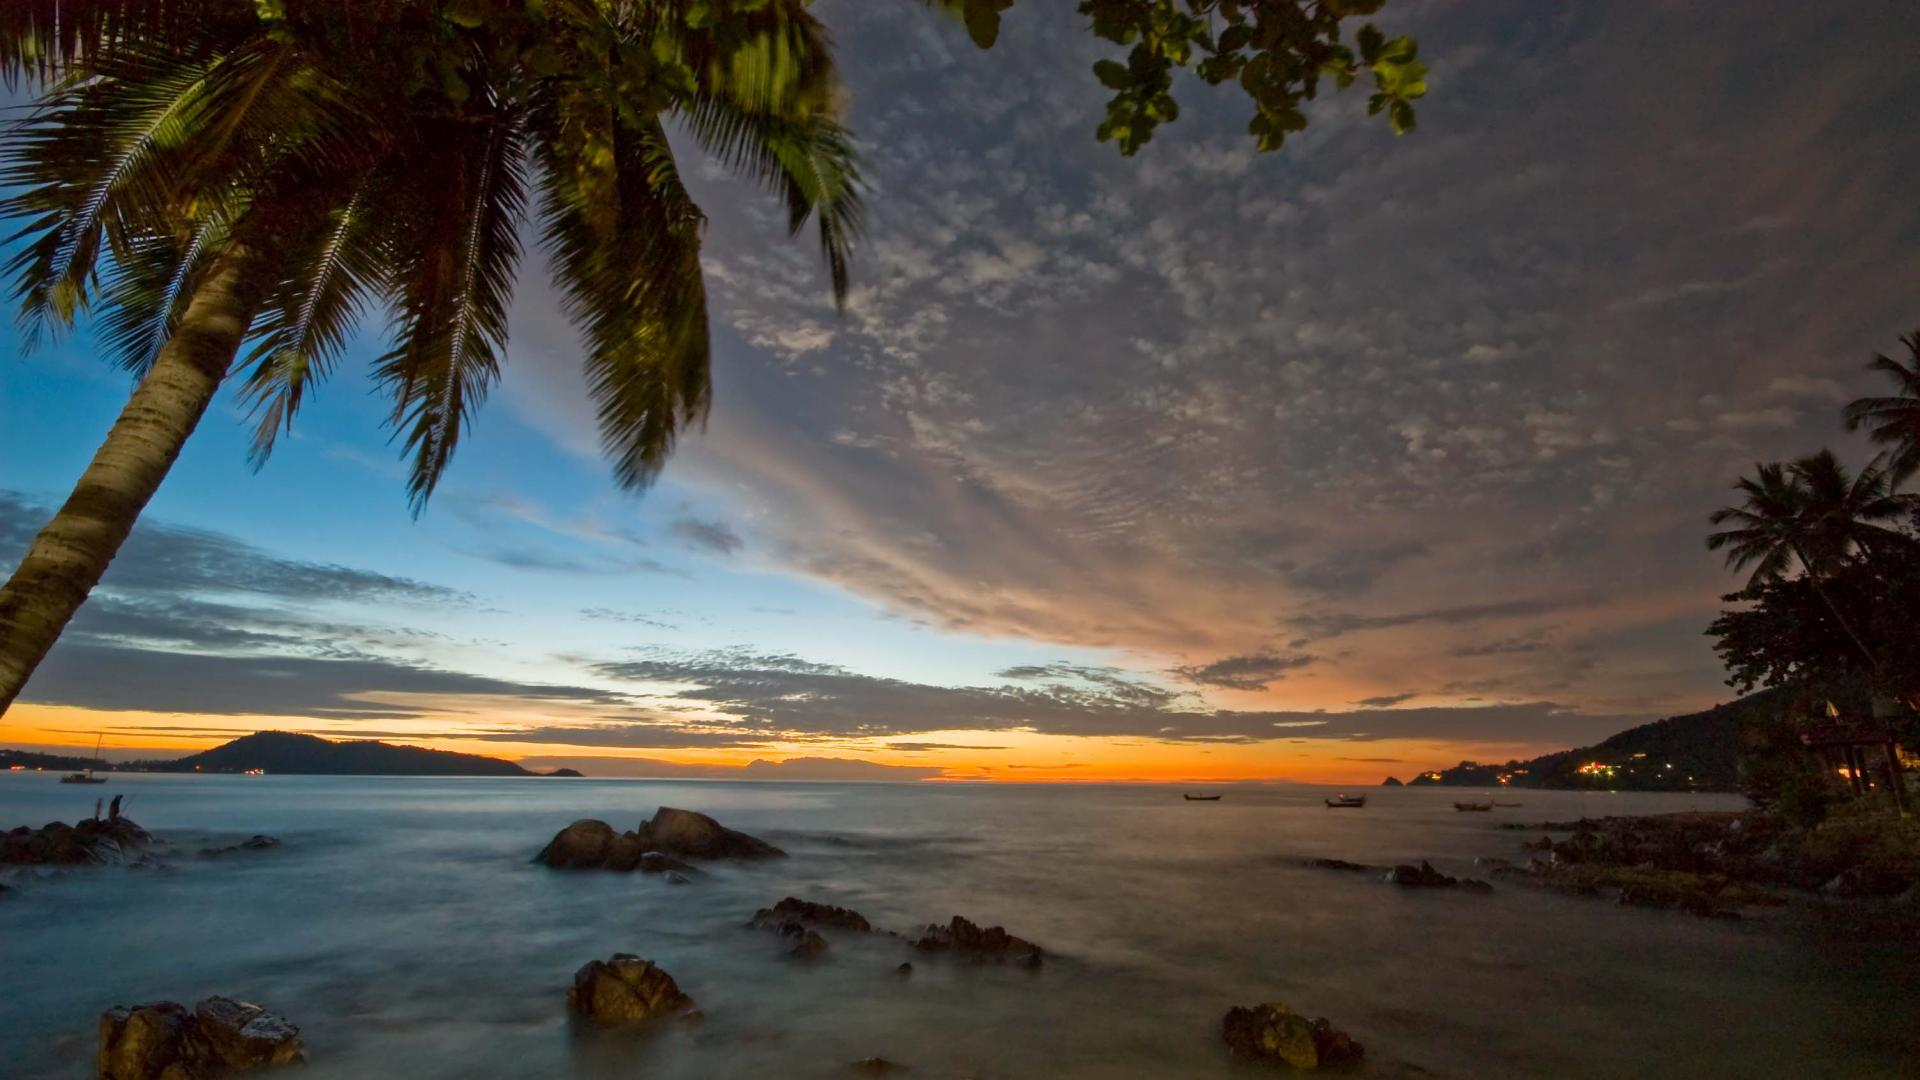 Patong Sunset Beach Thailand HD Wallpaper Patong Sunset Beach Thailand 1920x1080